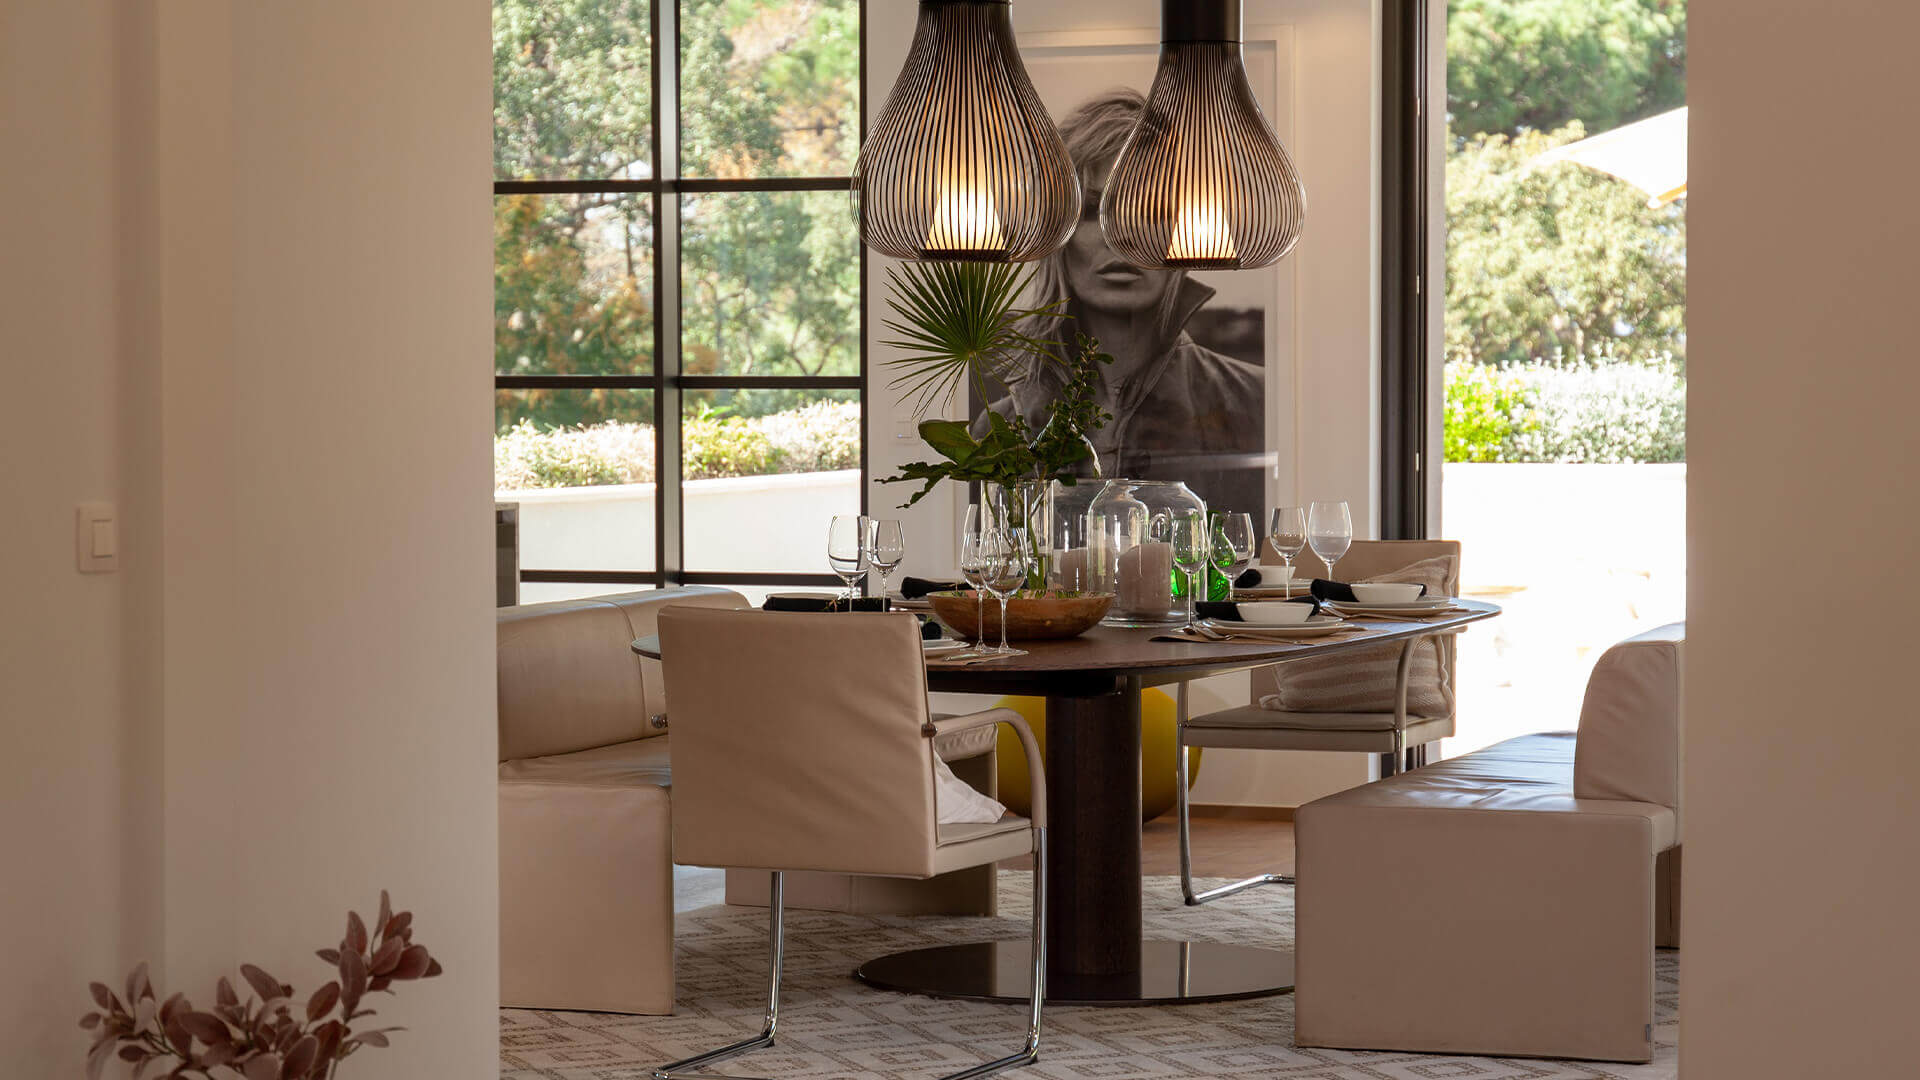 Dining area with wineglasses